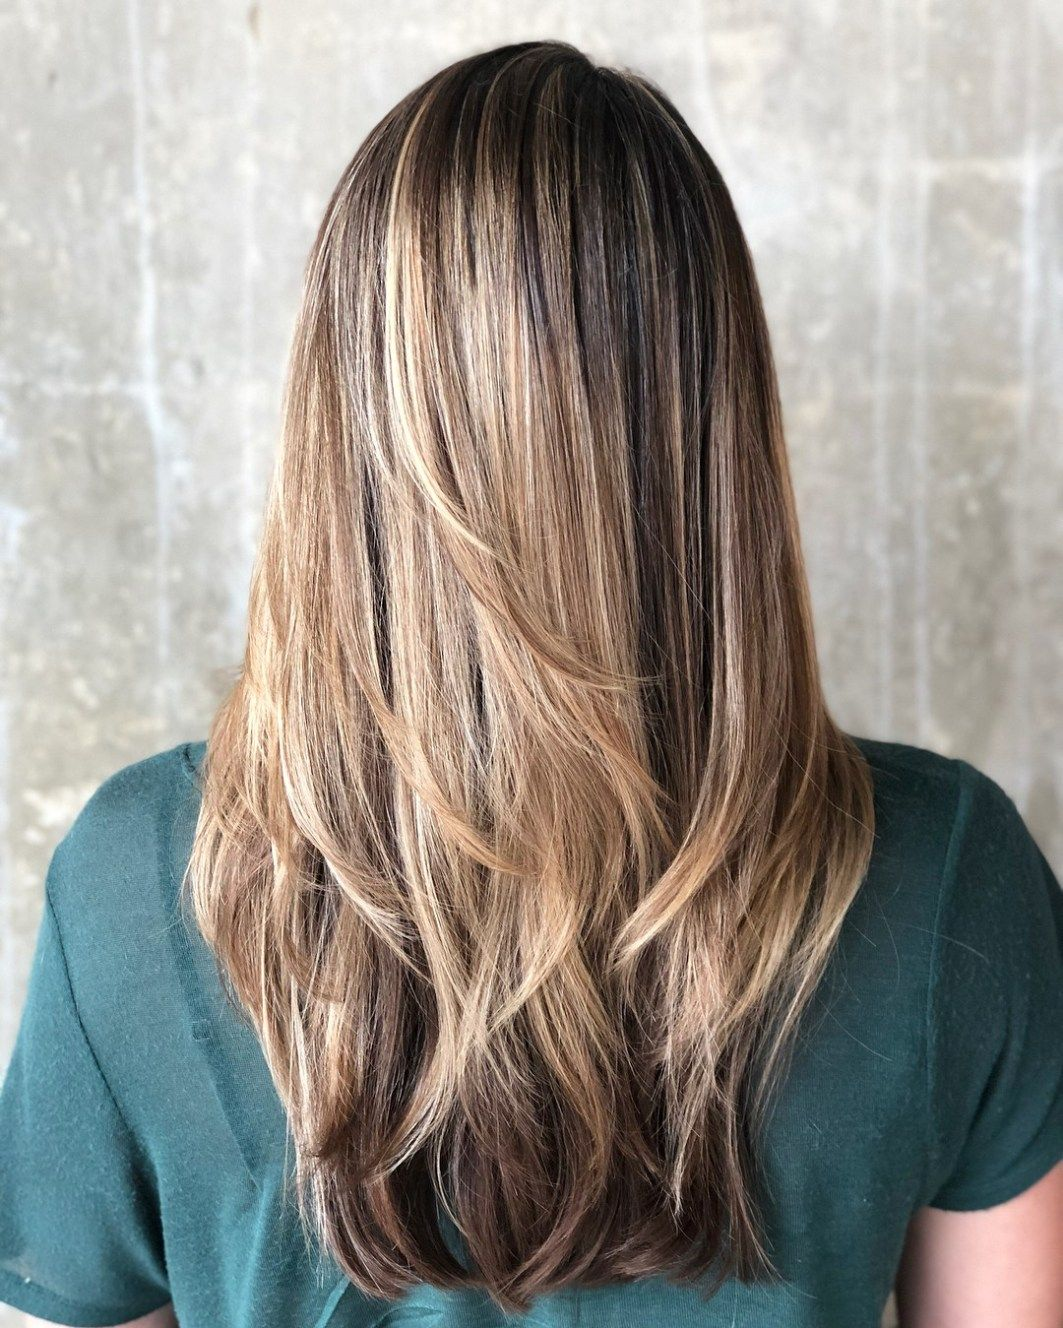 50 Lovely Layered Haircuts For Long Hair Long Layered Hair New Long Hairstyles Haircuts For Long Hair With Layers